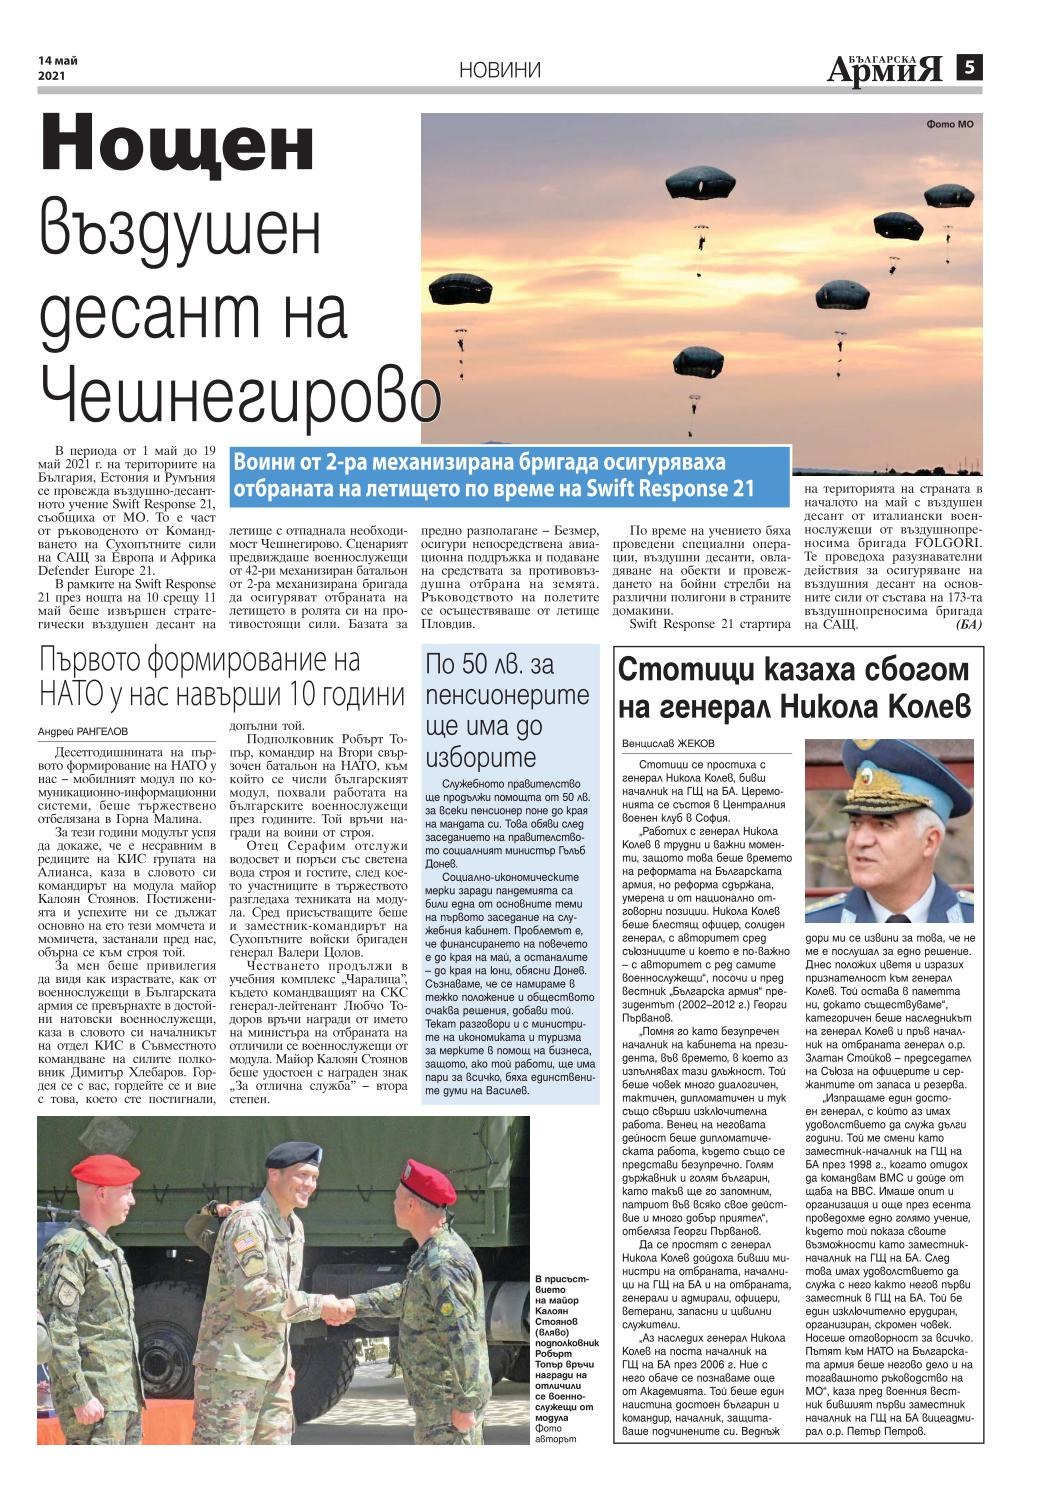 https://armymedia.bg/wp-content/uploads/2021/05/05.page1_-1.jpg